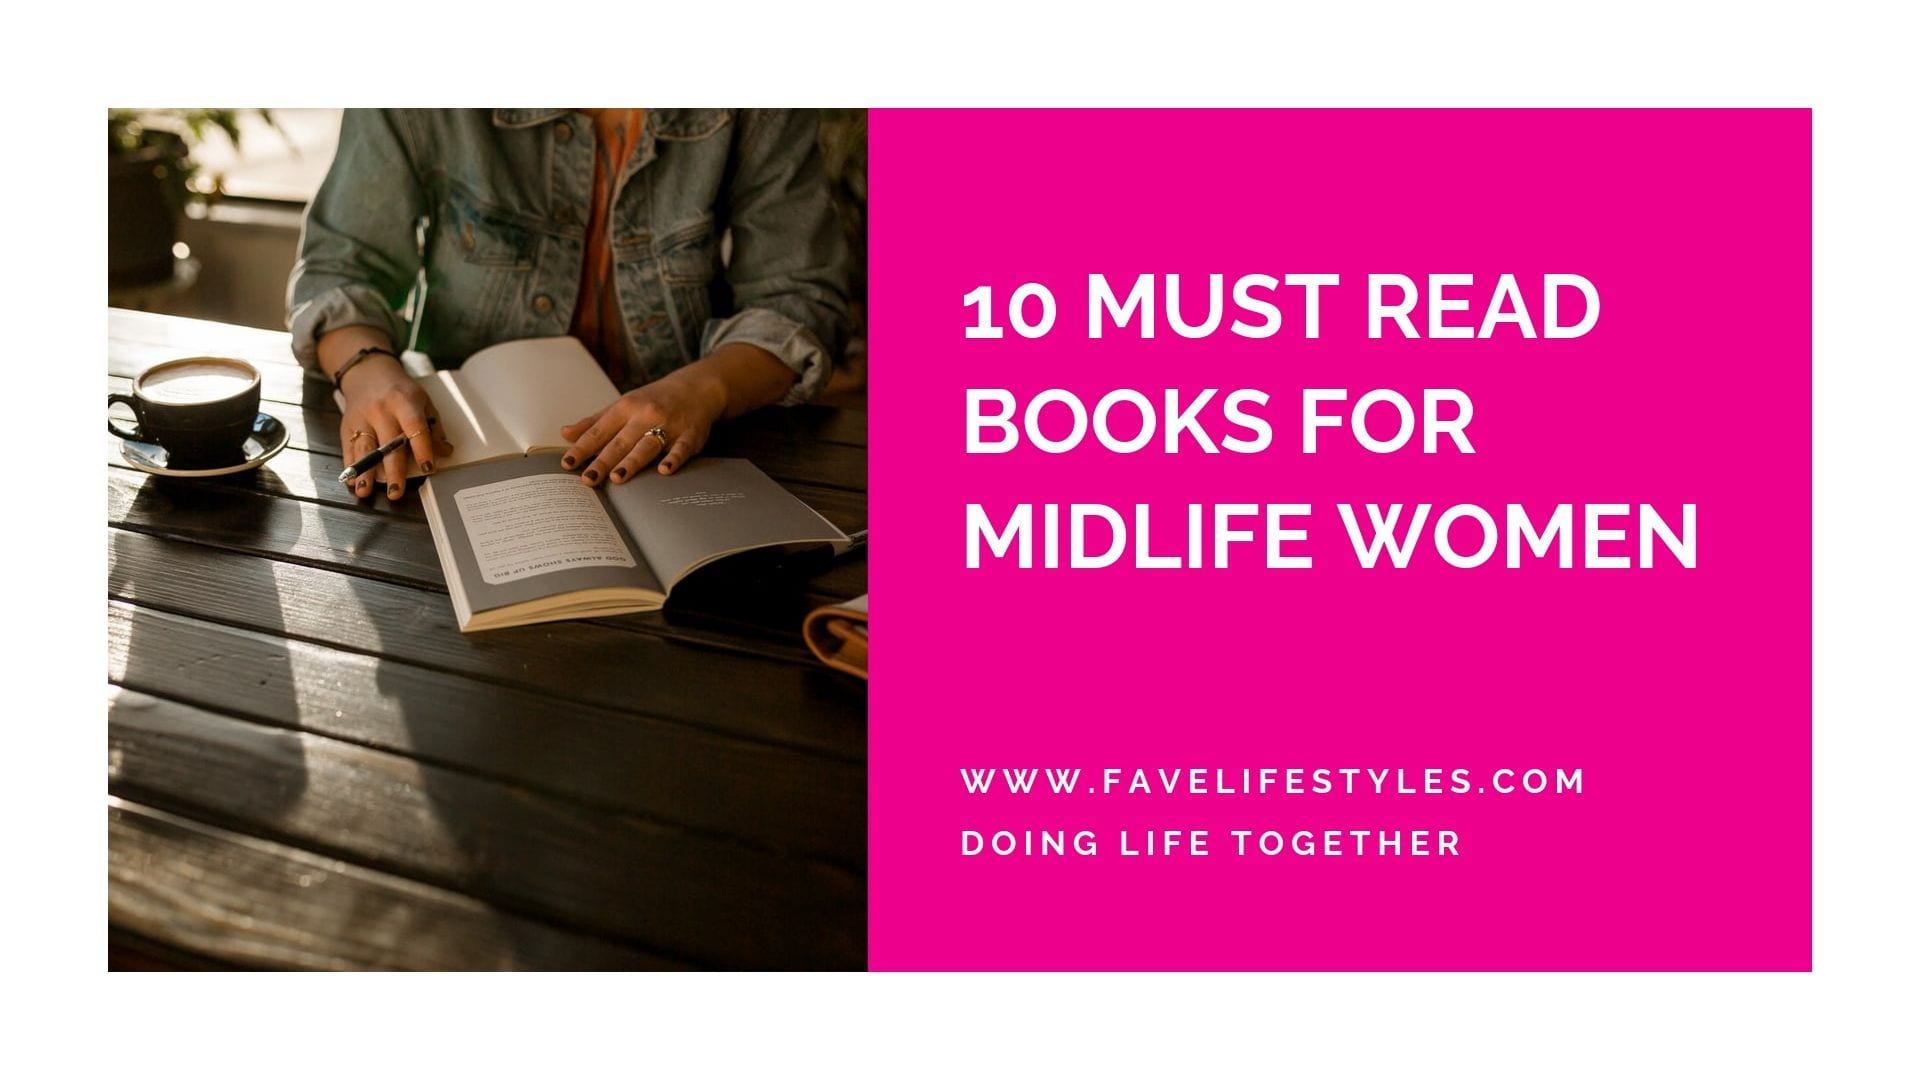 10 Must Read Books for Midlife Women